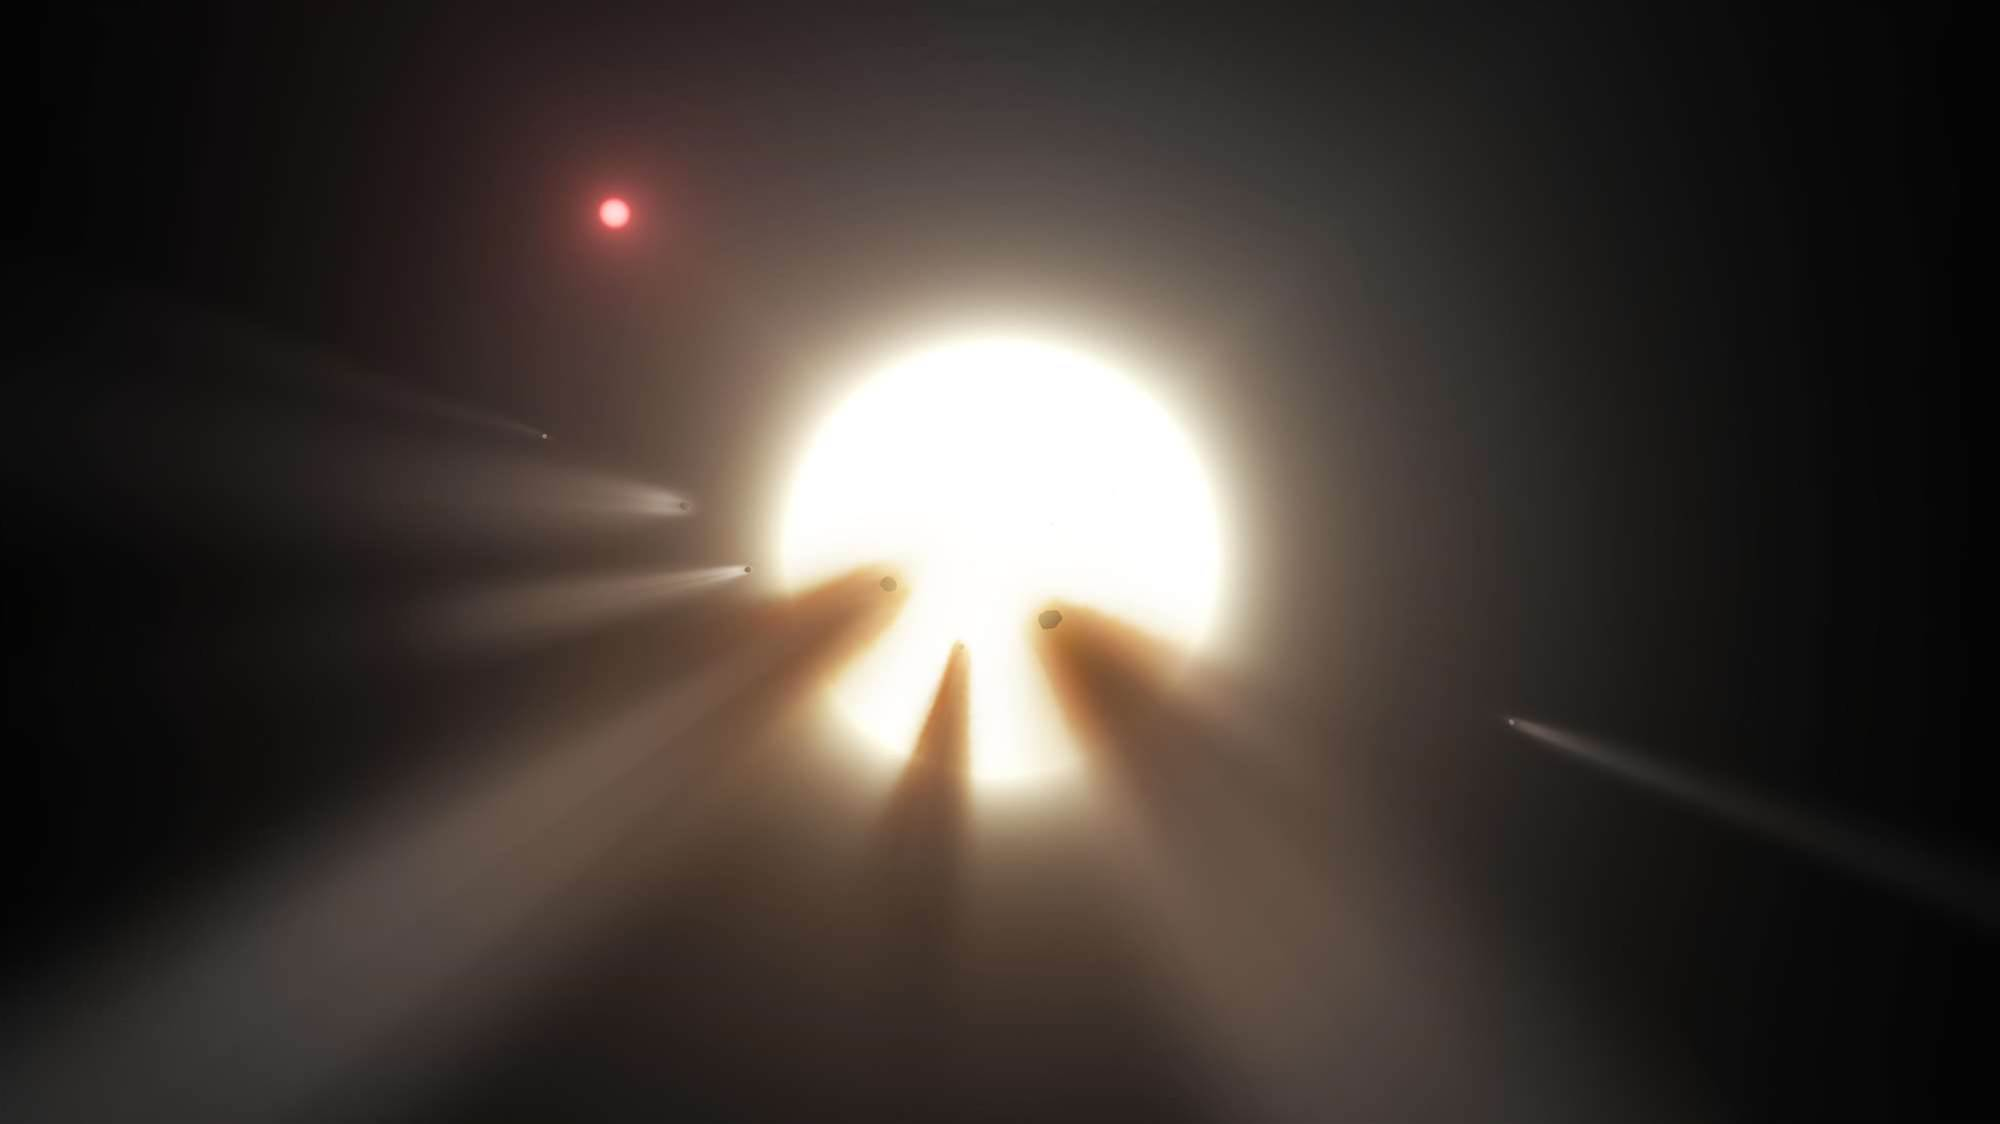 'Alien Megastructure' Star Apparently Thronged By Comets